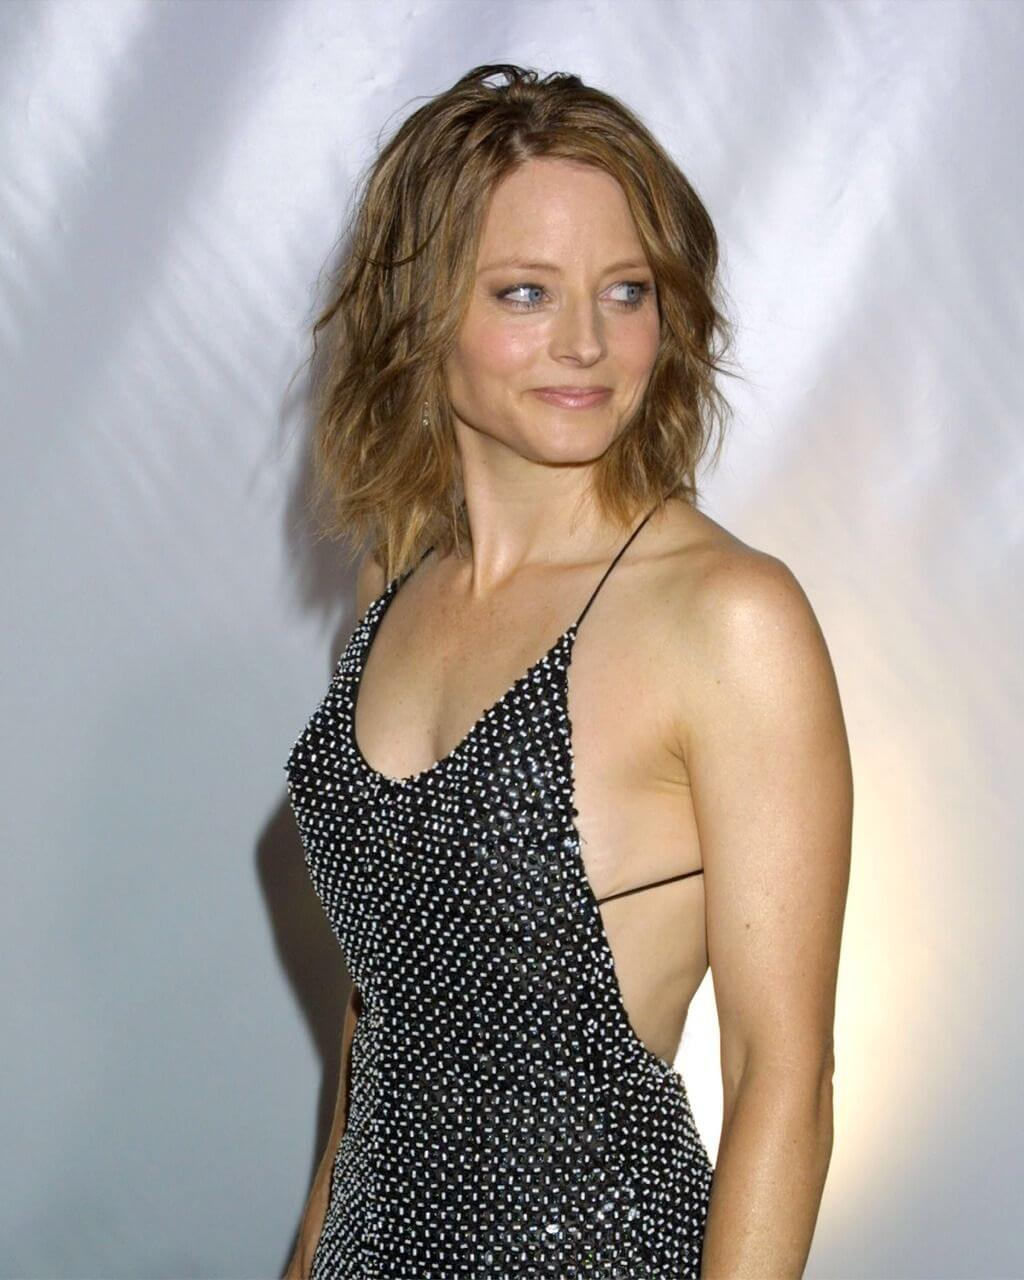 jodie foster - photo #5